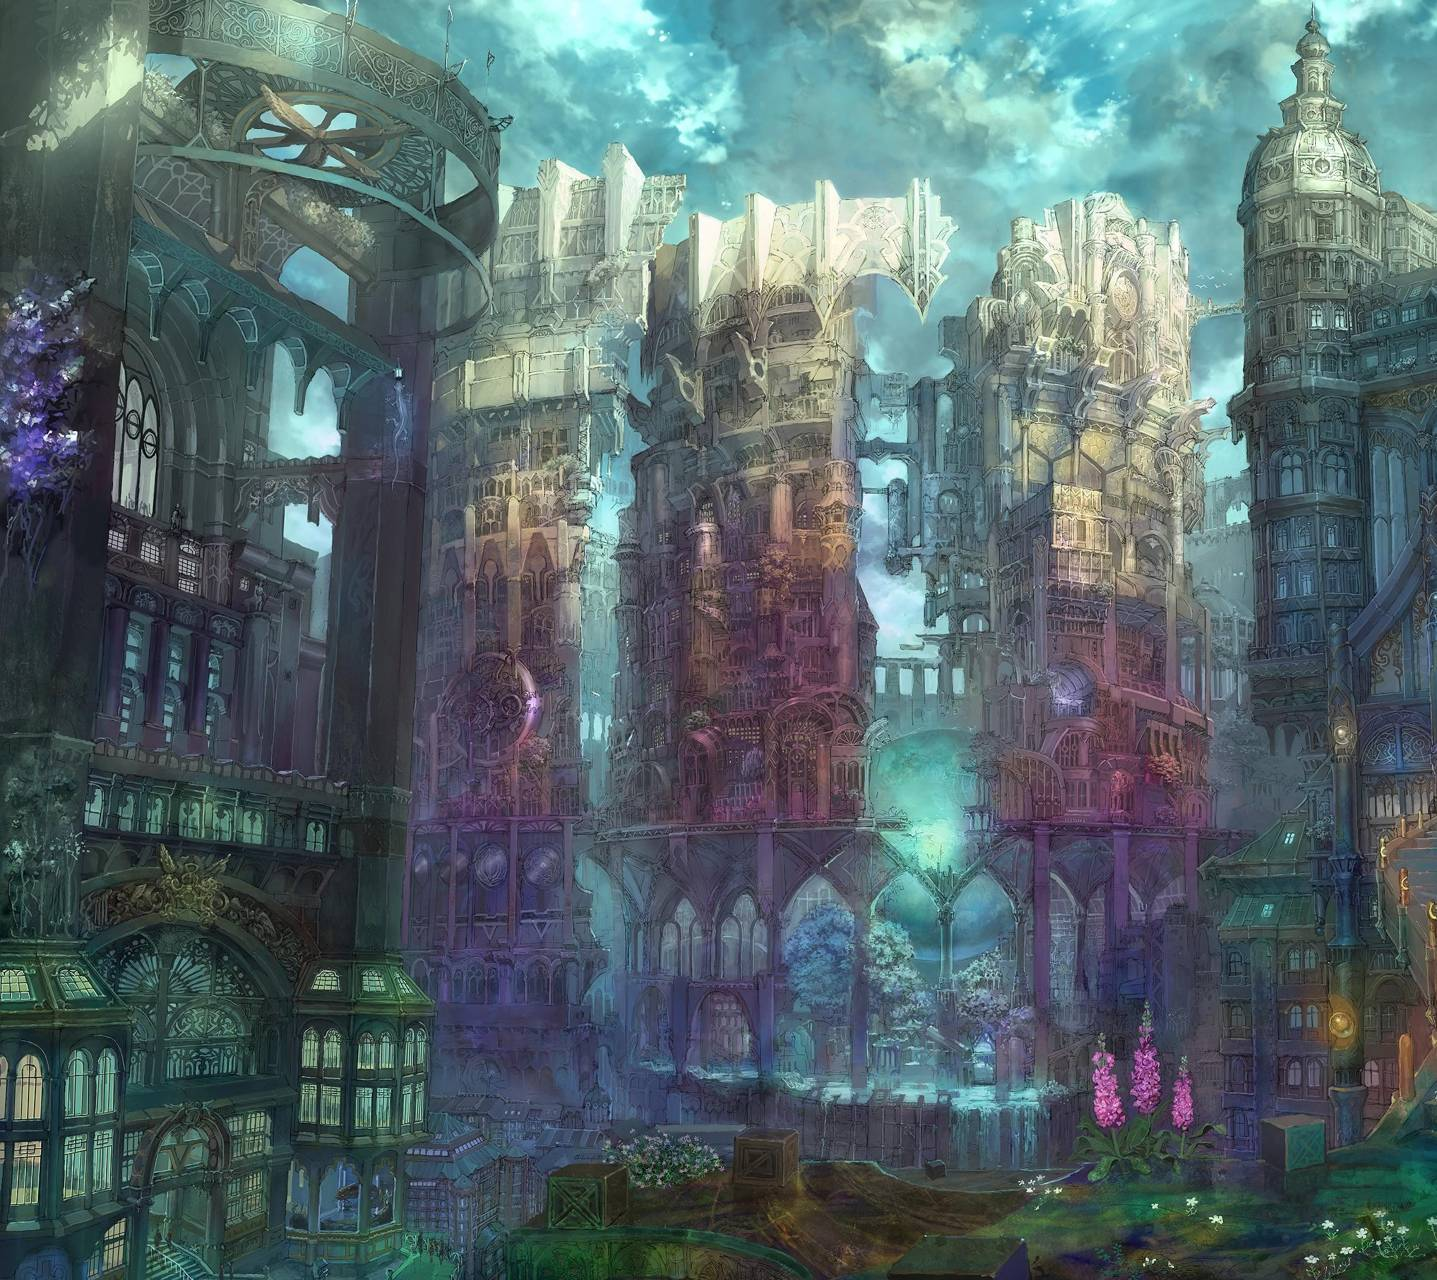 Anime City Wallpaper By JD_Bowers